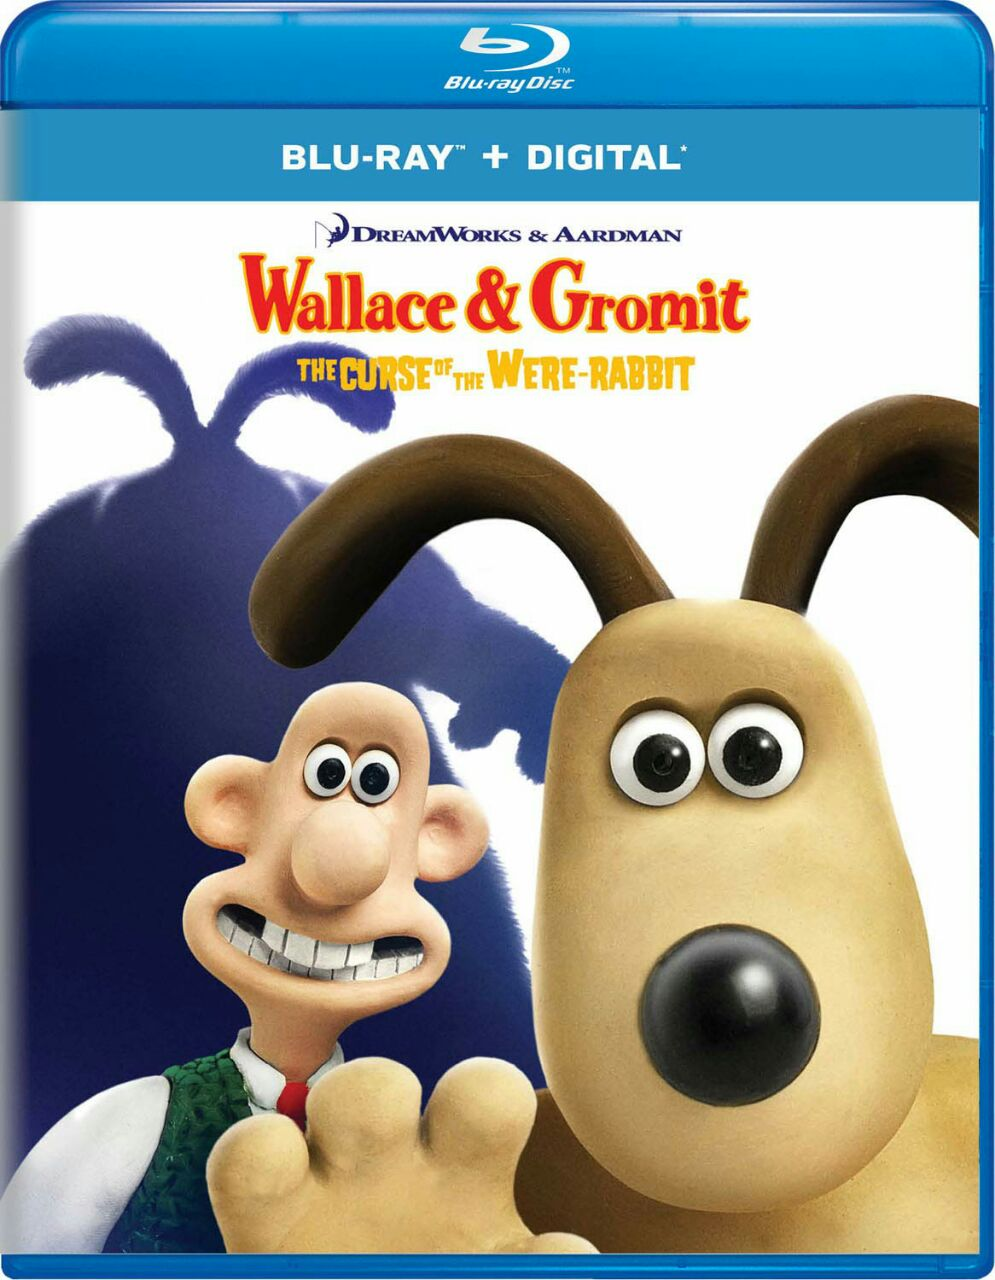 Free Download Wallace & Gromit: The Curse of the Were-Rabbit Full Movie